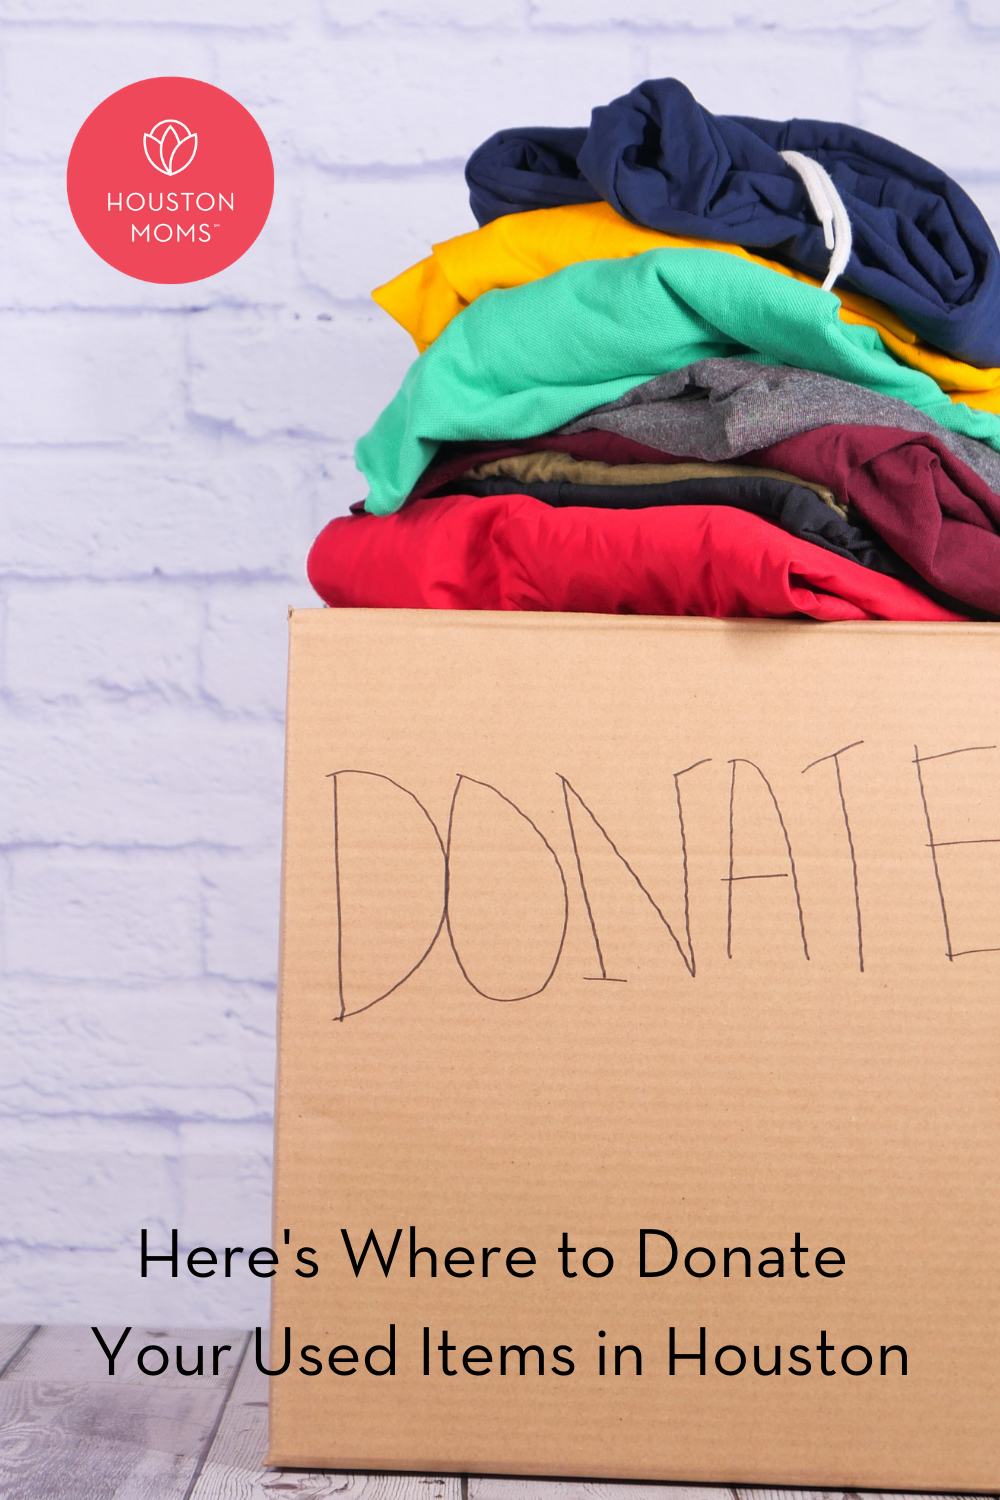 """Houston Moms """"Here's Where to Donate Your Used Items in Houston"""" #houstonmoms #houstonmomsblog #momsaroundhouston"""